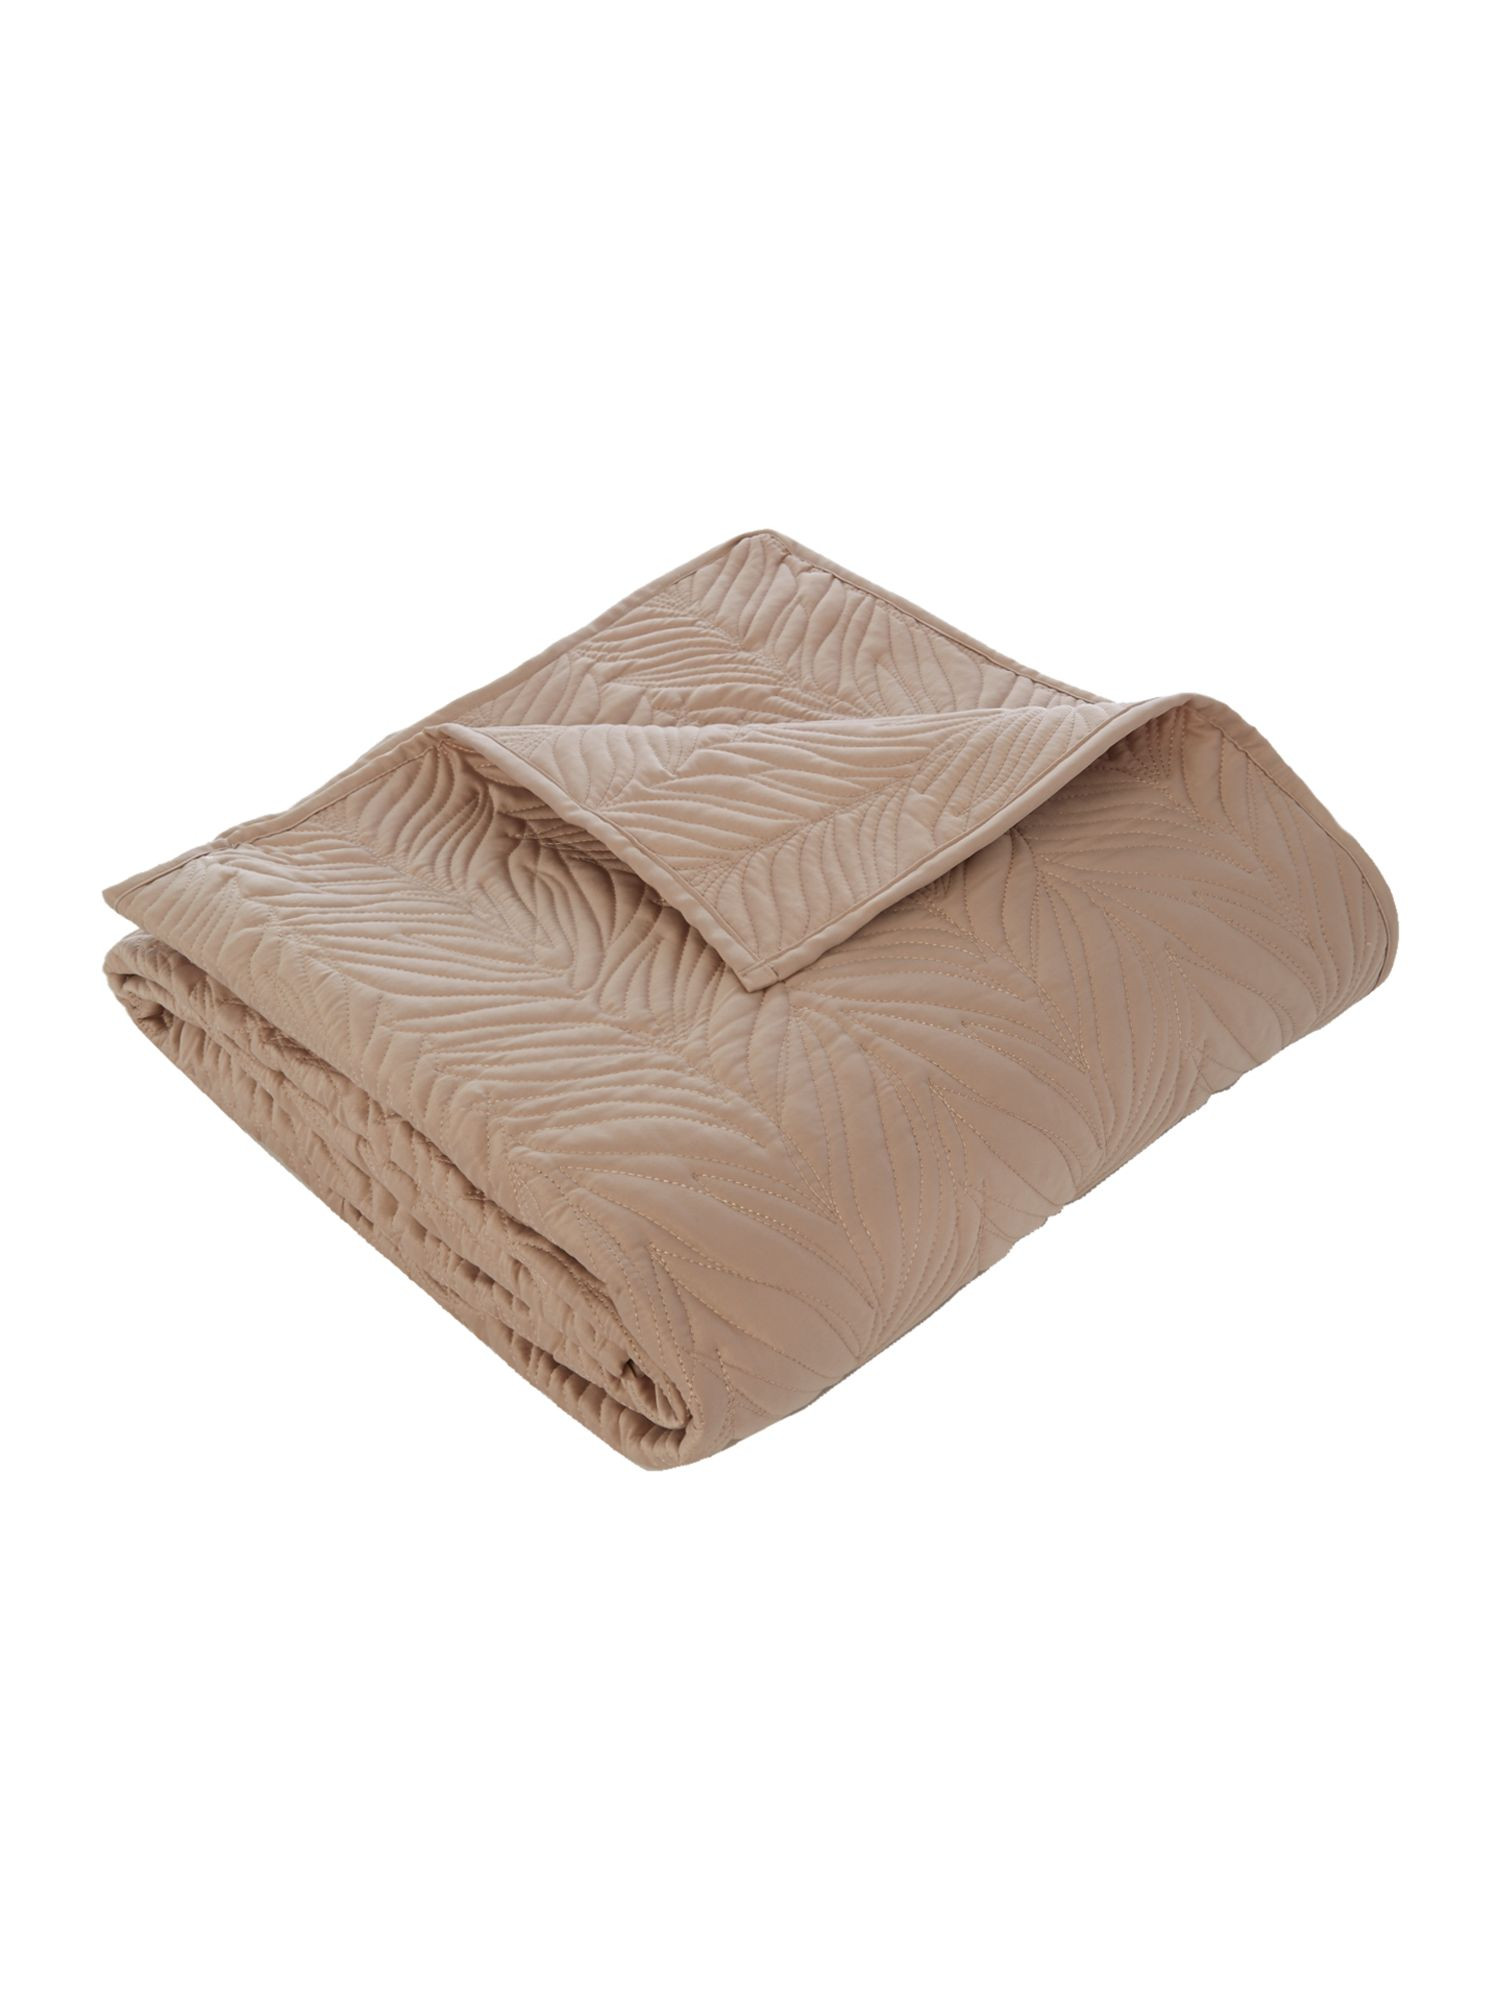 Putty leaf bedspread